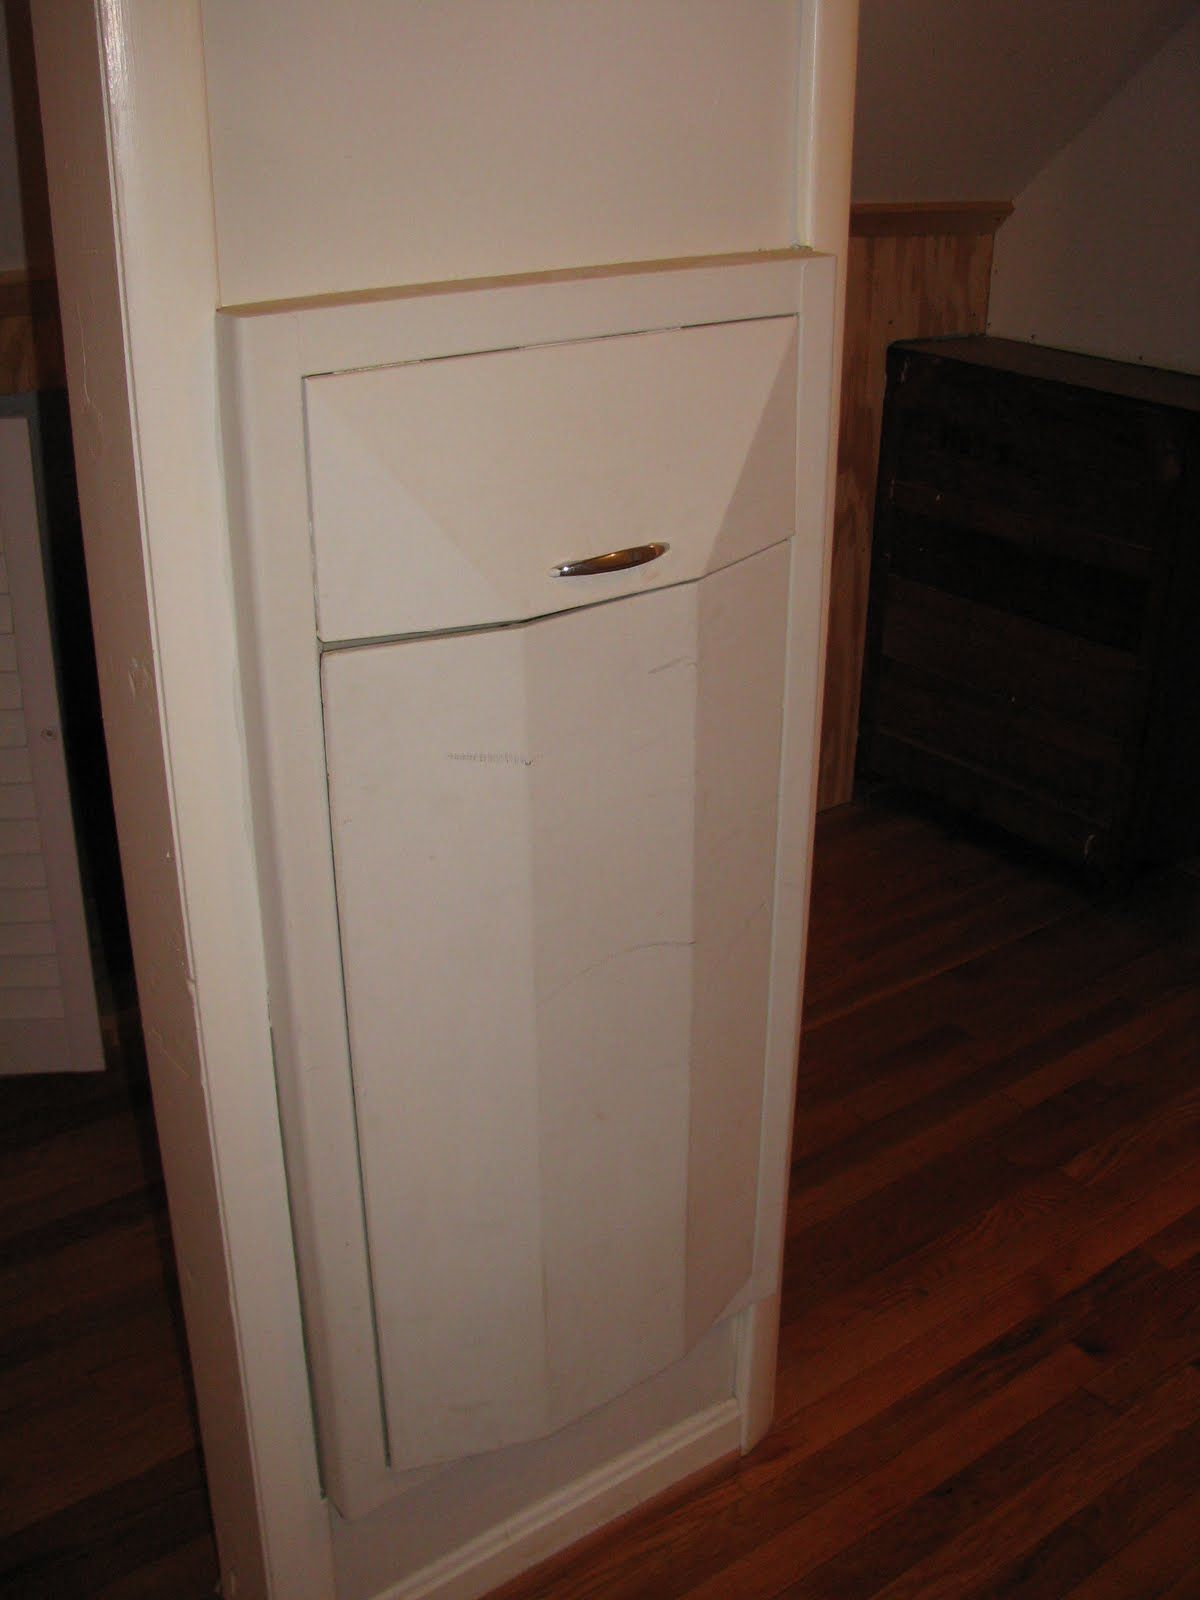 Laundry Trash Cans Between The Studs Built In Hamper Wonder If This Would Work For